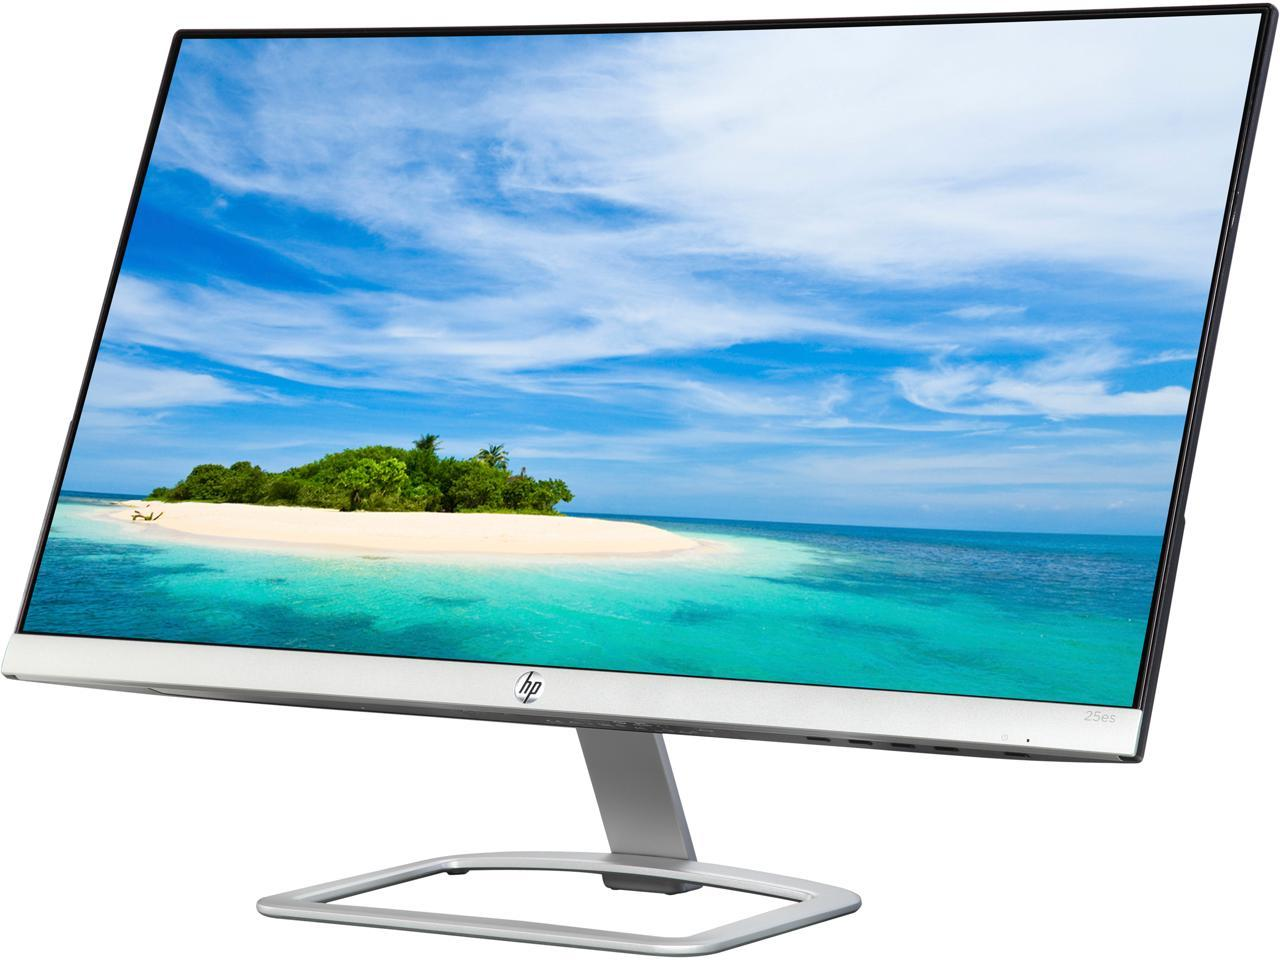 "Refurbished: HP 25es 25"" 7 ms (GTG) Widescreen LED Backlight 1080p IPS Monitor,"